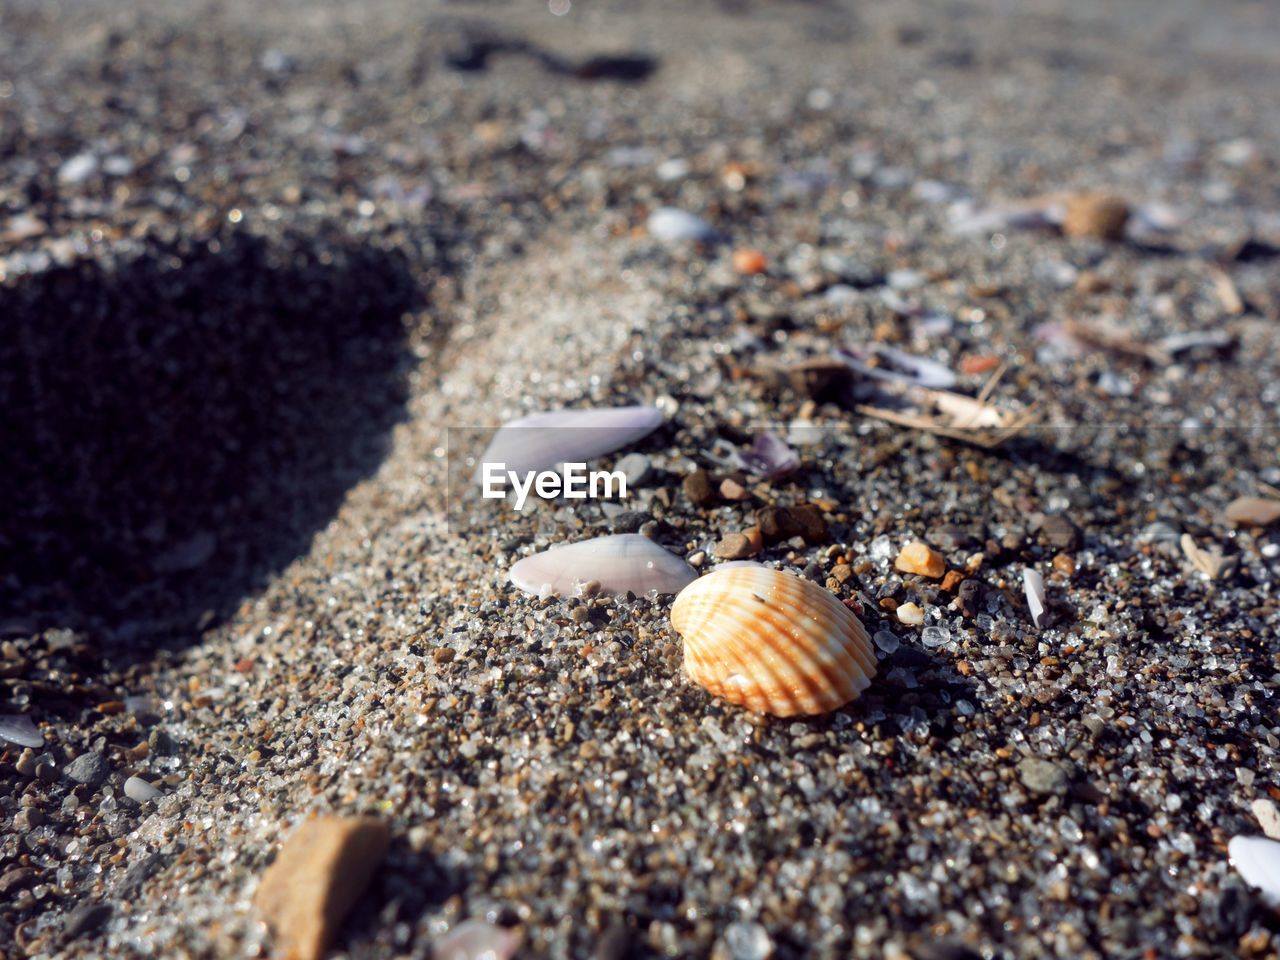 beach, animal shell, sand, hermit crab, animal themes, one animal, seashell, nature, snail, day, animals in the wild, outdoors, gastropod, sea, sea life, close-up, no people, animal wildlife, beauty in nature, fragility